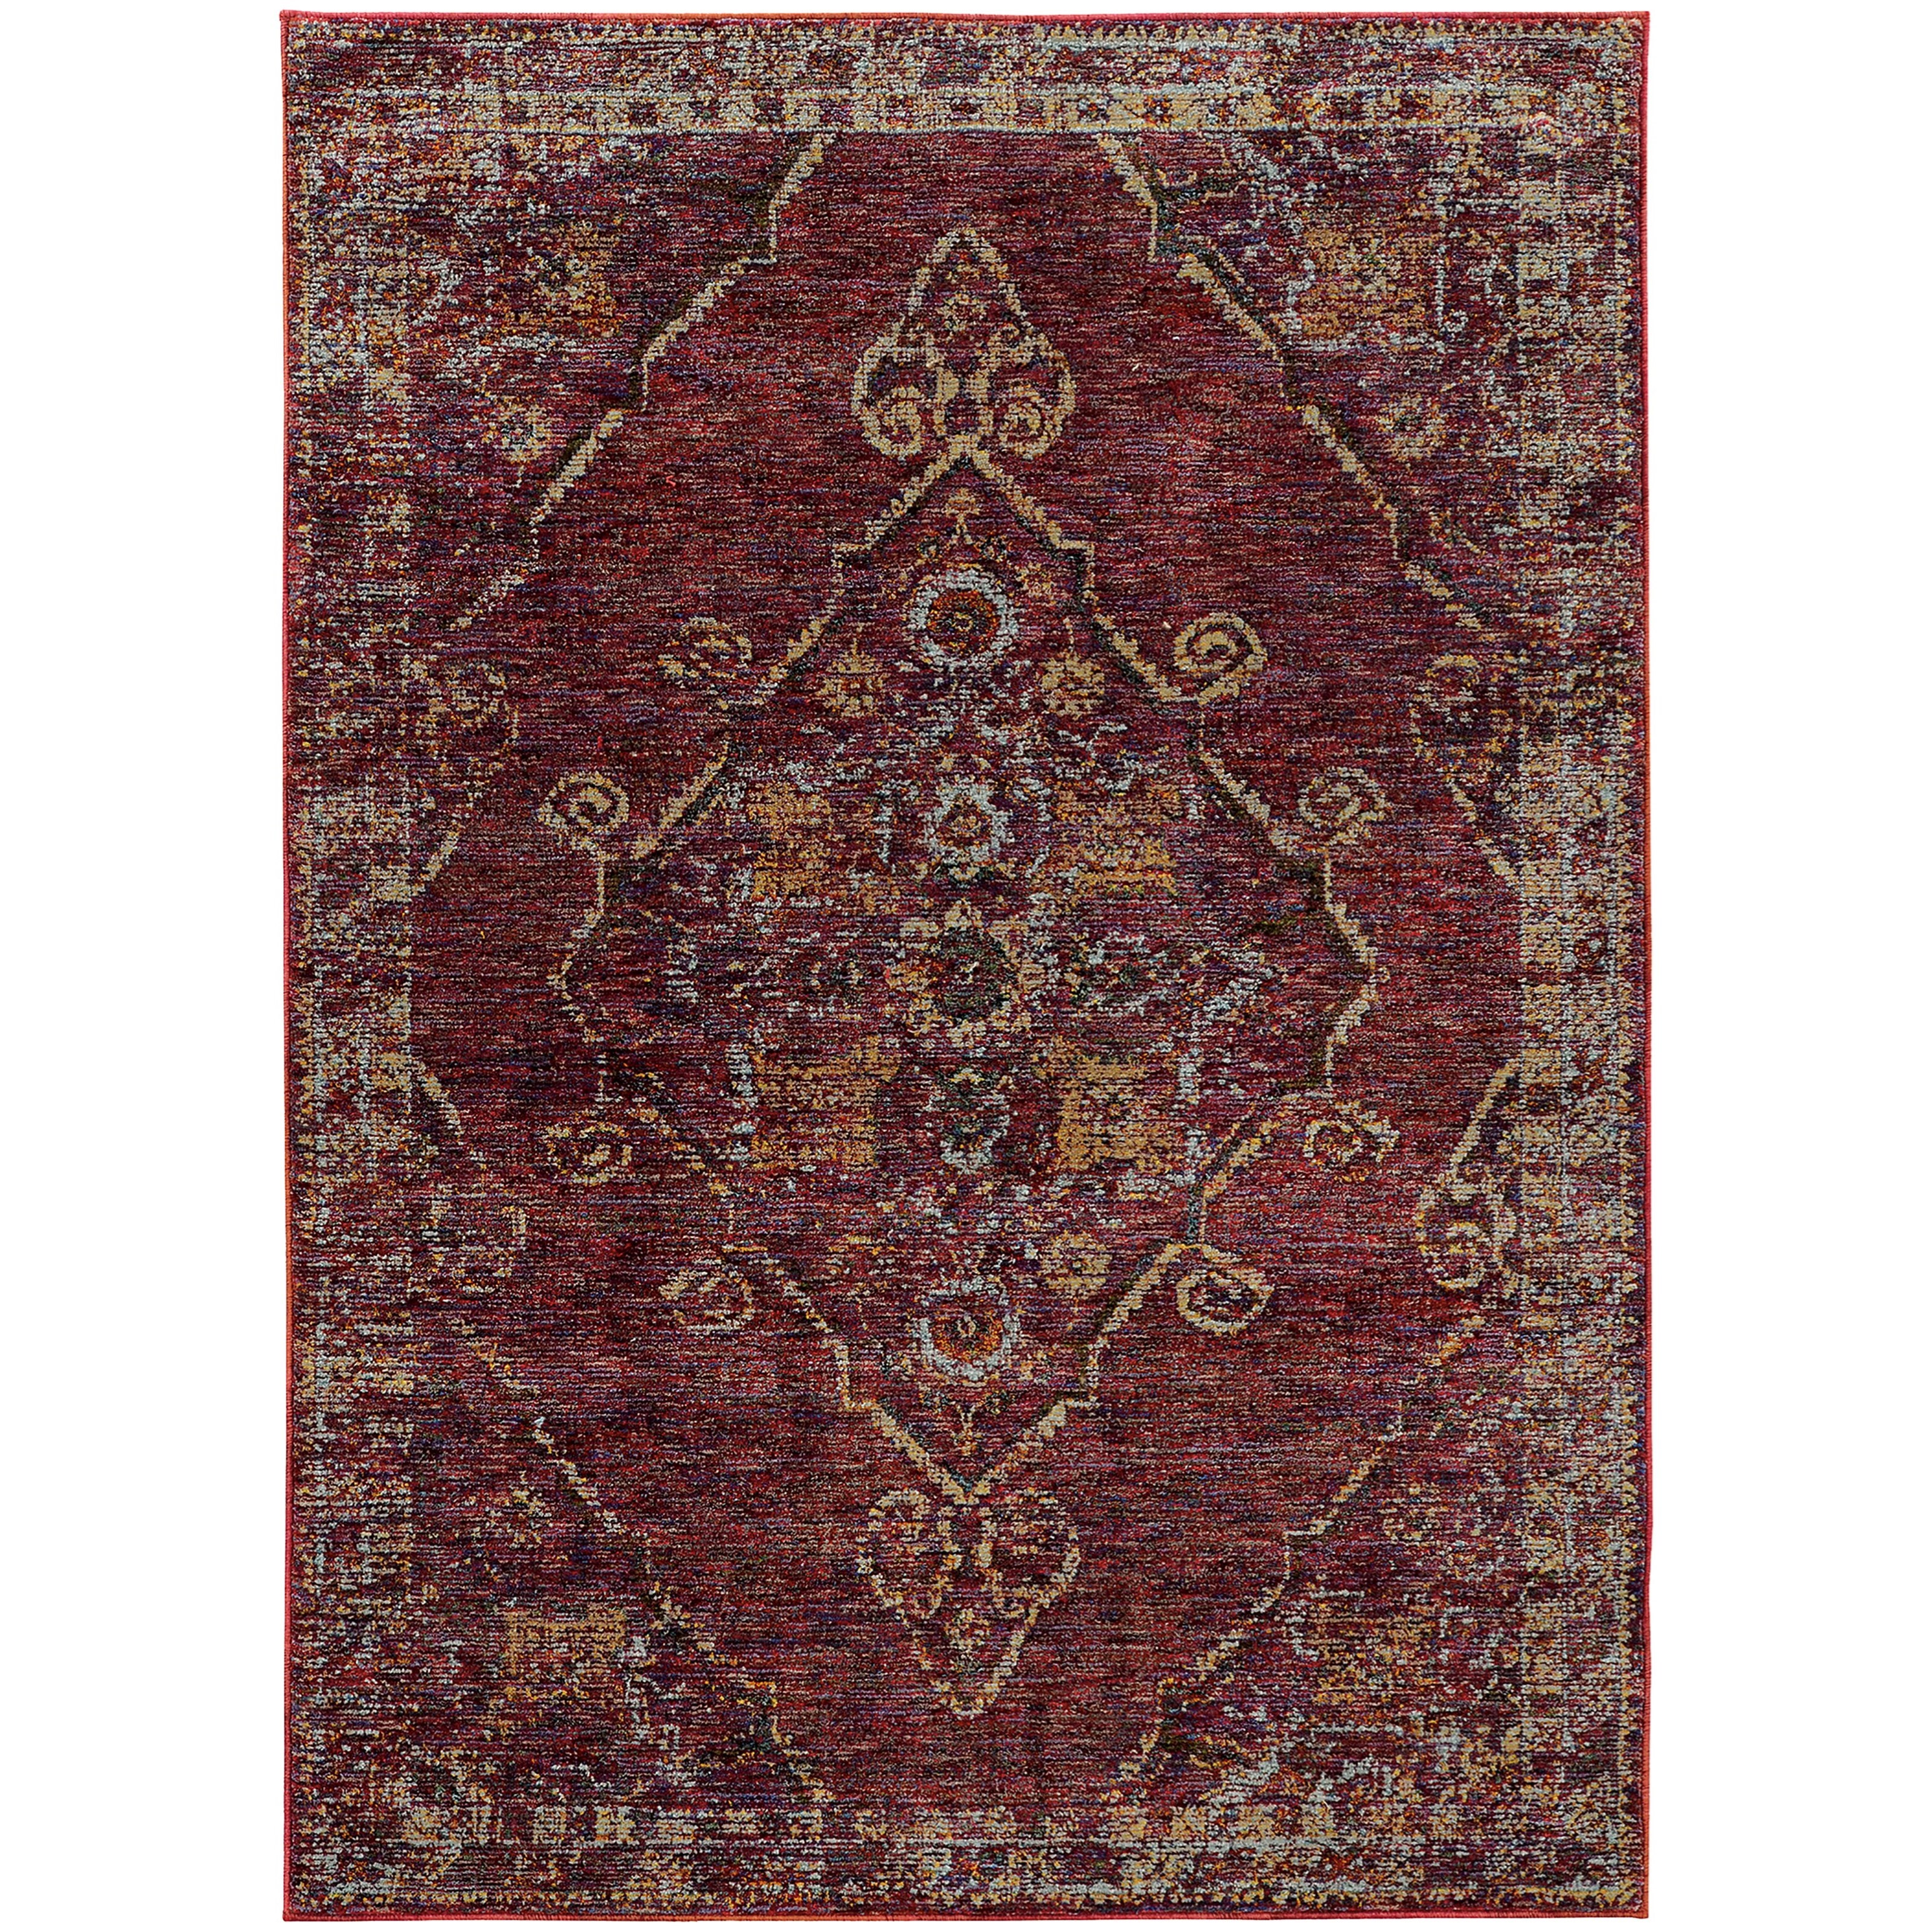 """Andorra 5' 3"""" X  7' 3"""" Casual Red/ Gold Rectangle Ru by Oriental Weavers at Steger's Furniture"""